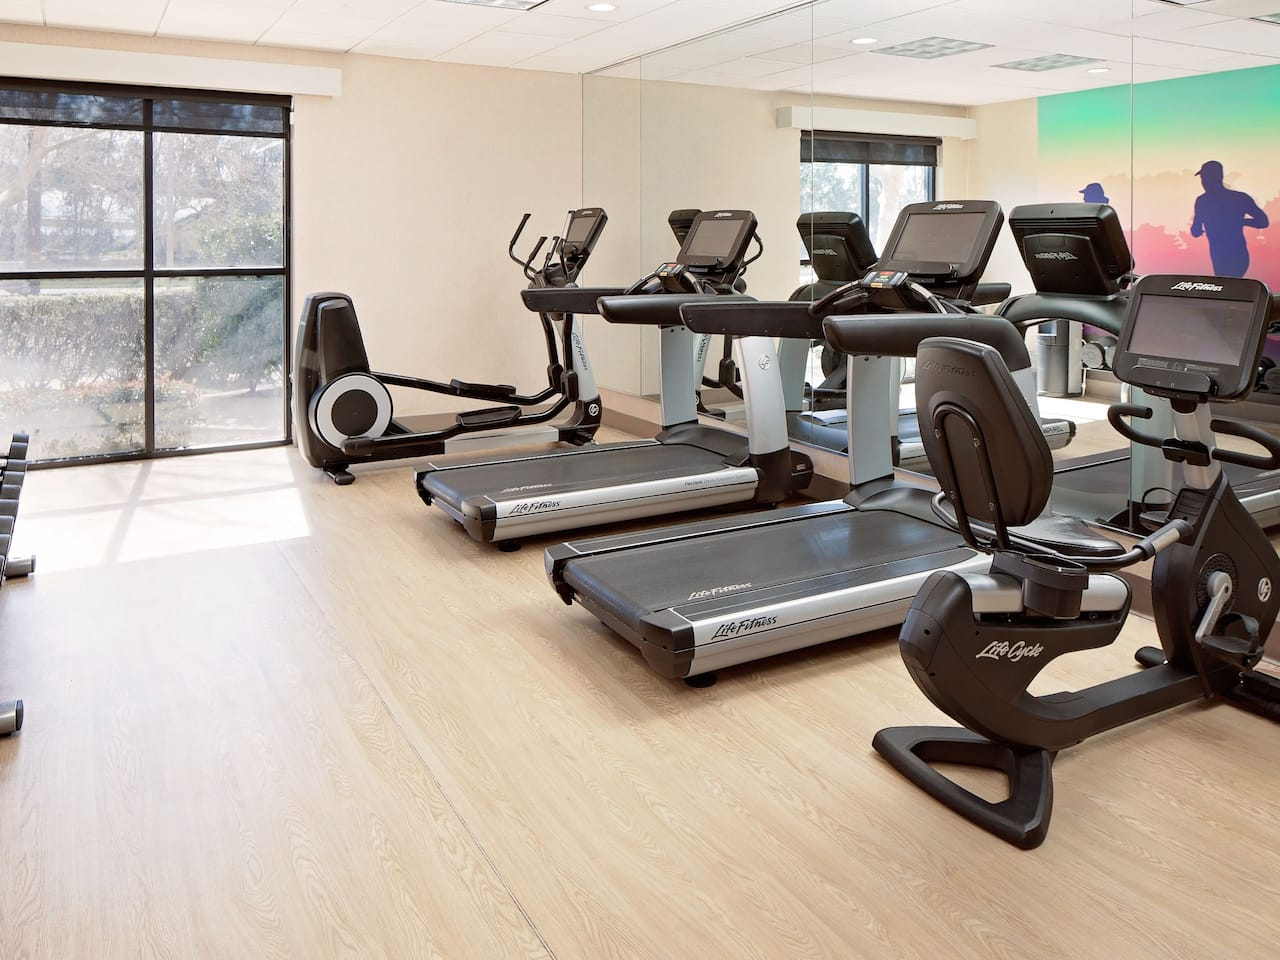 Fitness Center at Hyatt Place Ontario Rancho Cucamonga